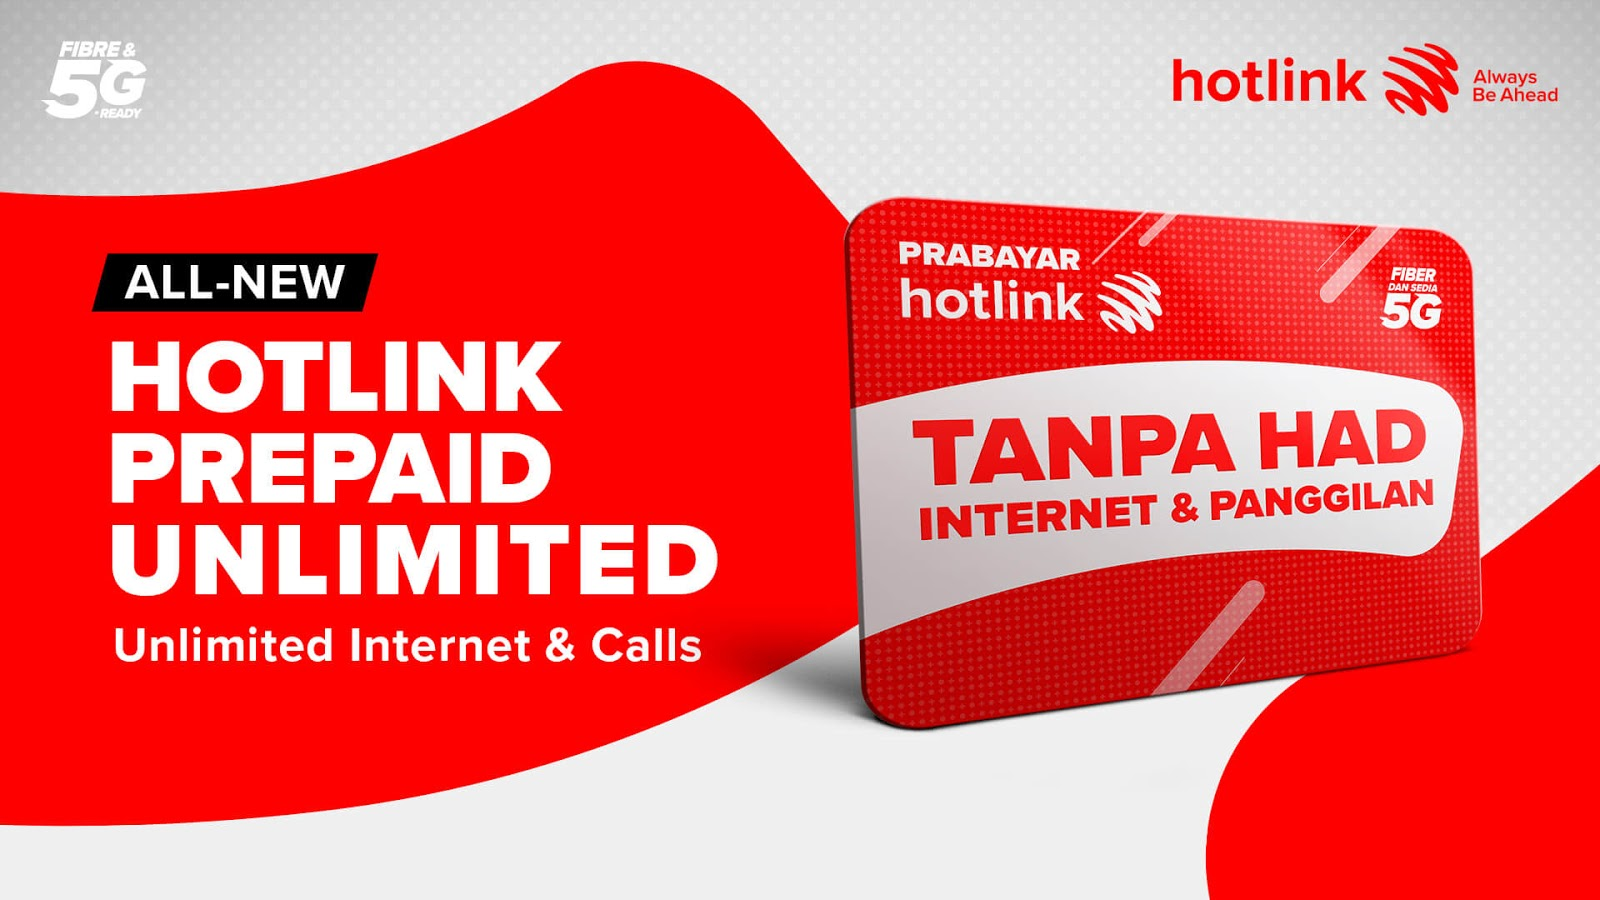 Hotlink Prepaid now with truly unlimited Internet and Calls